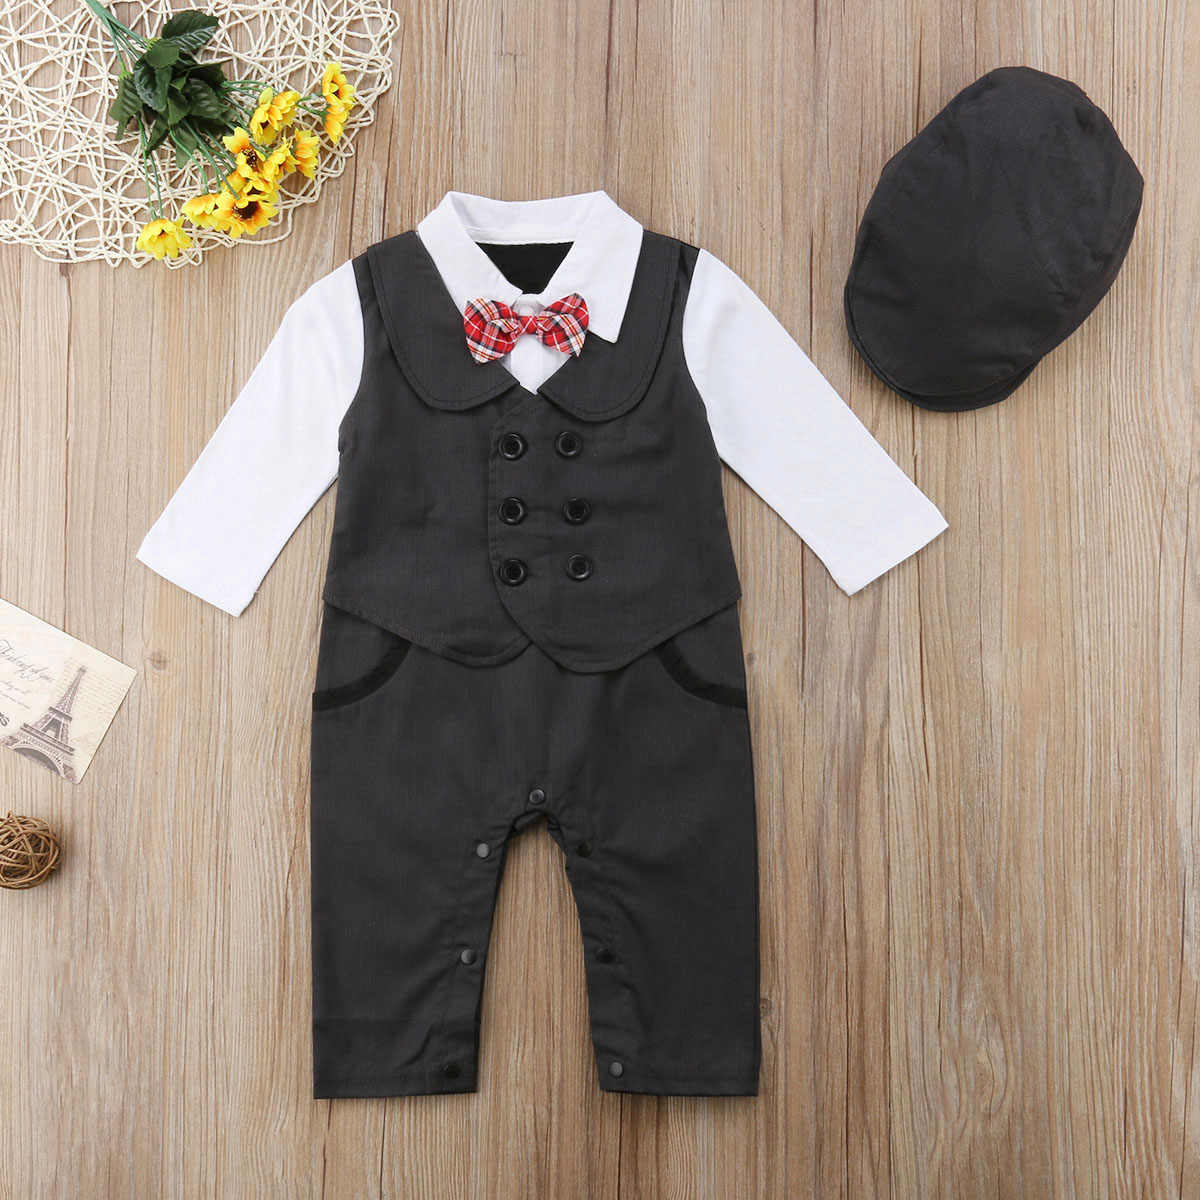 ef9235d5a Detail Feedback Questions about Newly Toddler Baby Boy Formal Suit ...